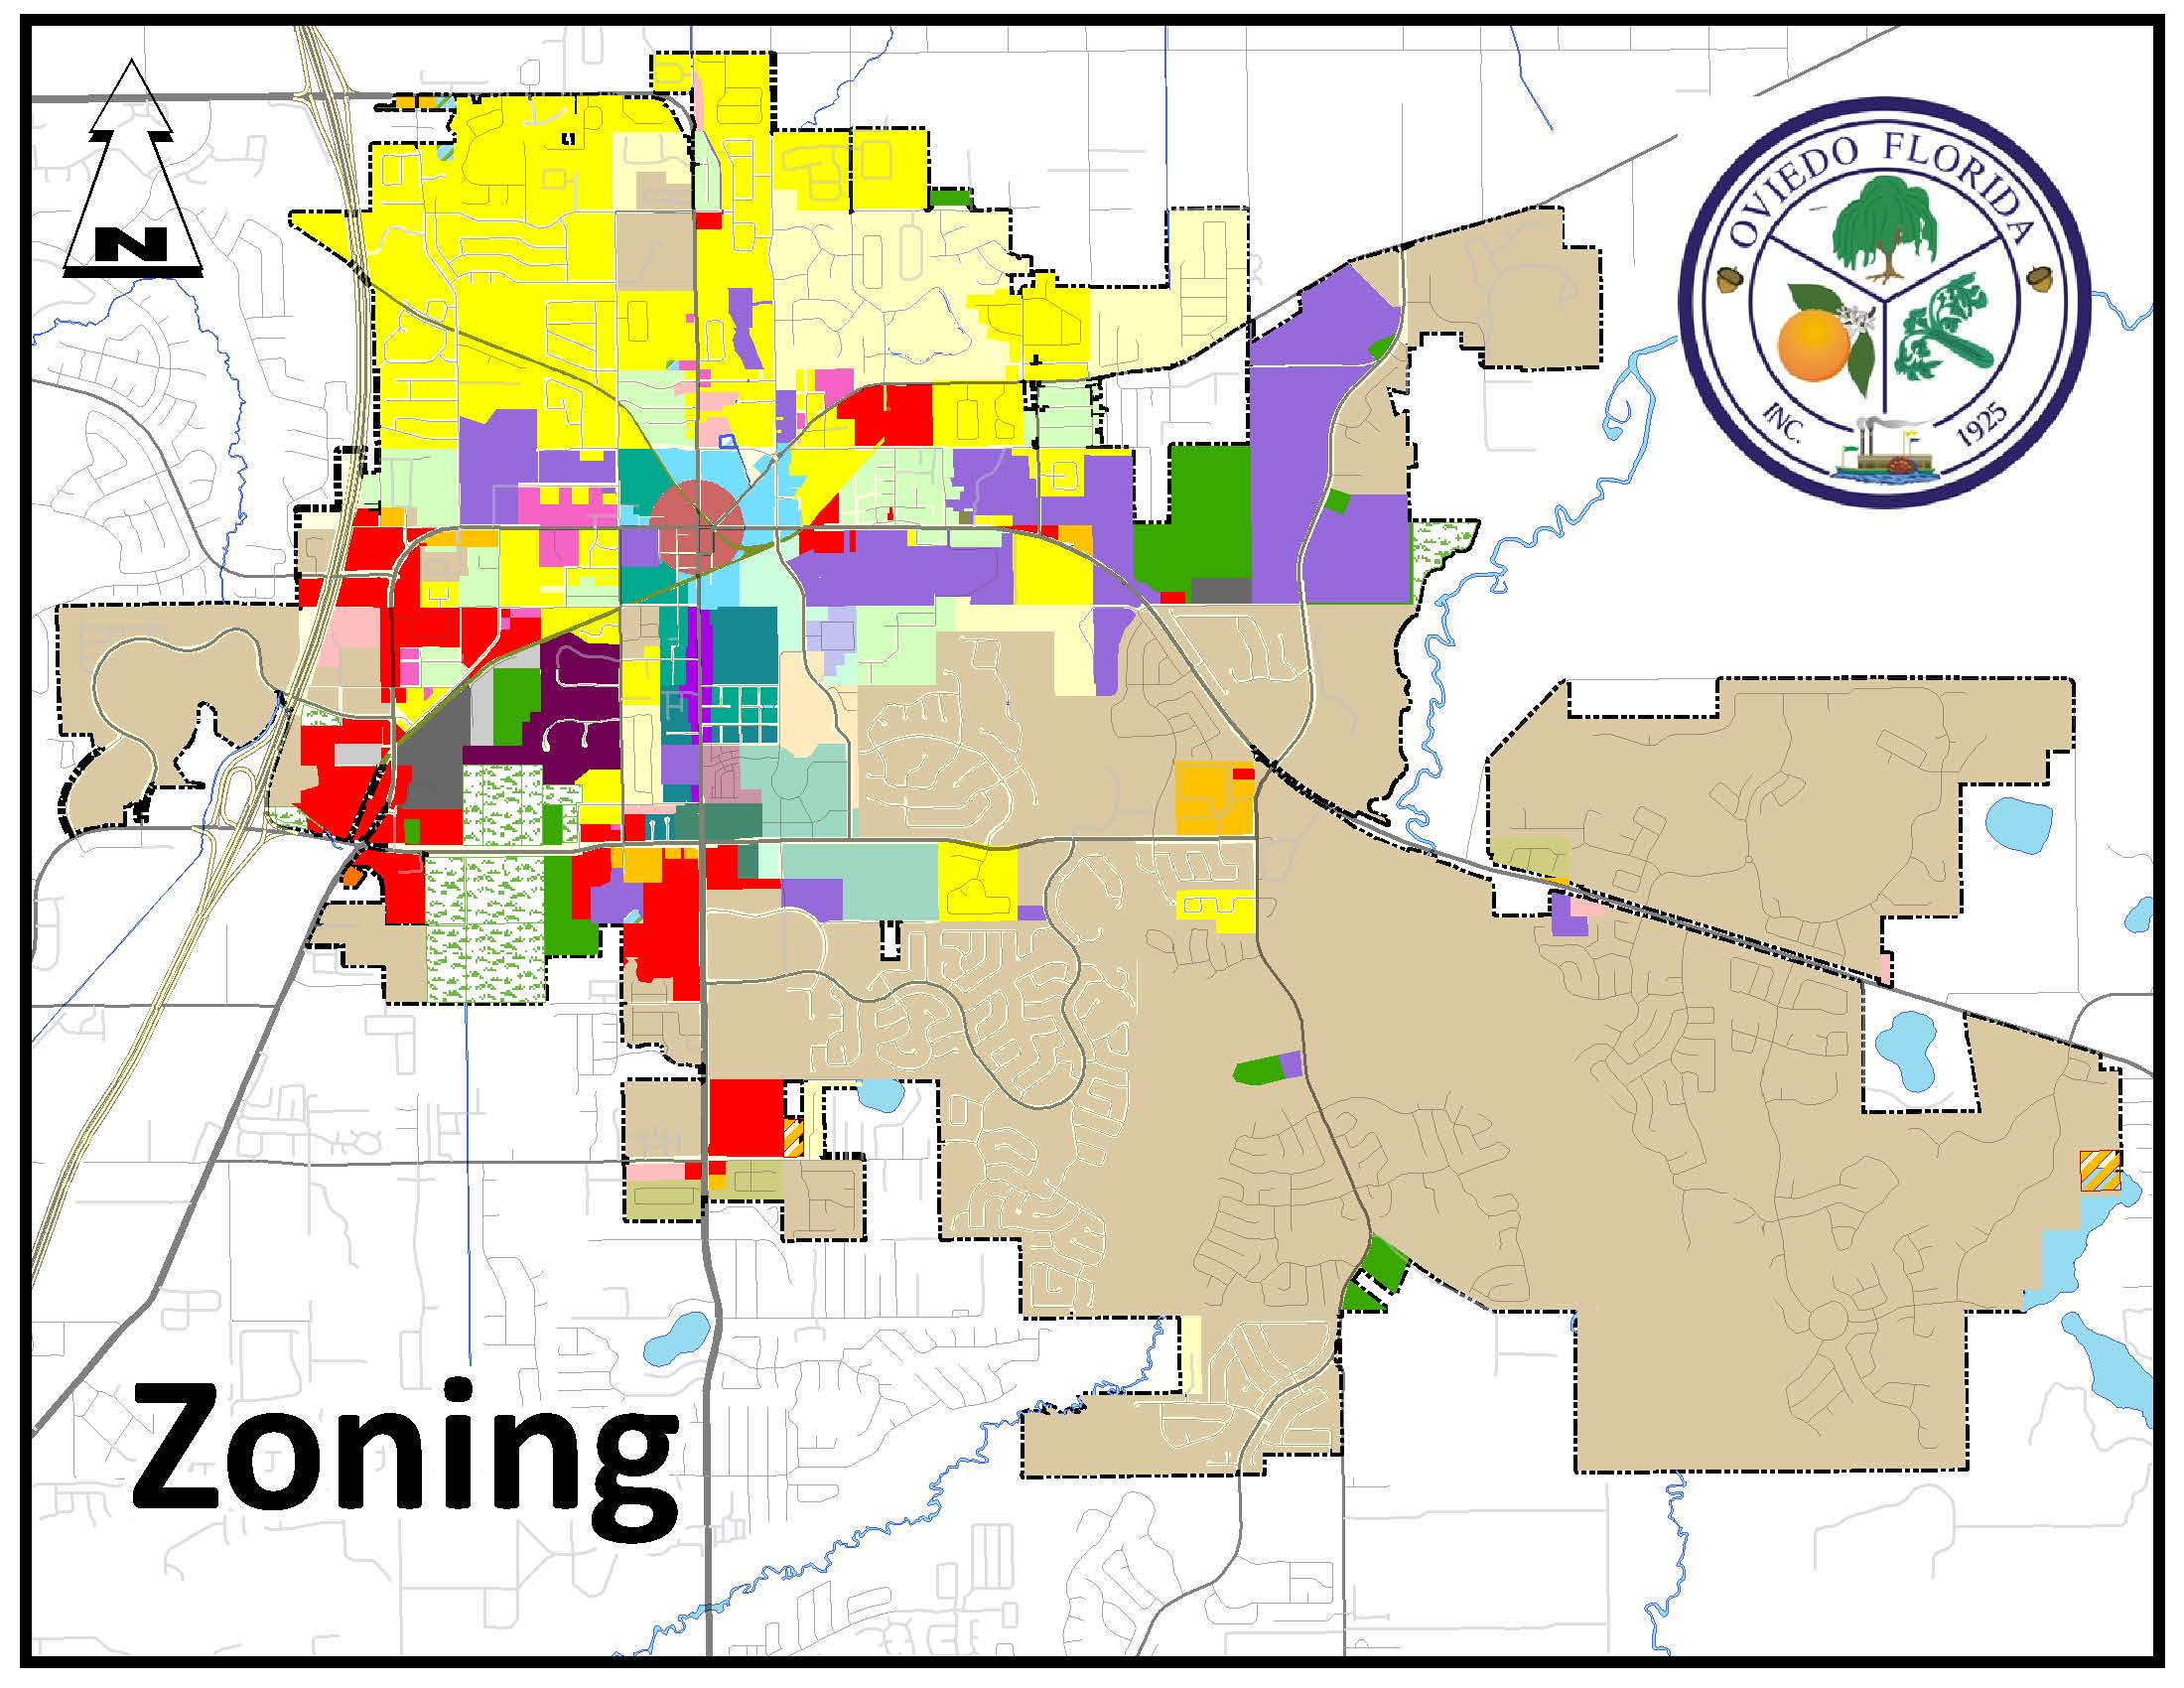 Filter city Zoning information by classification